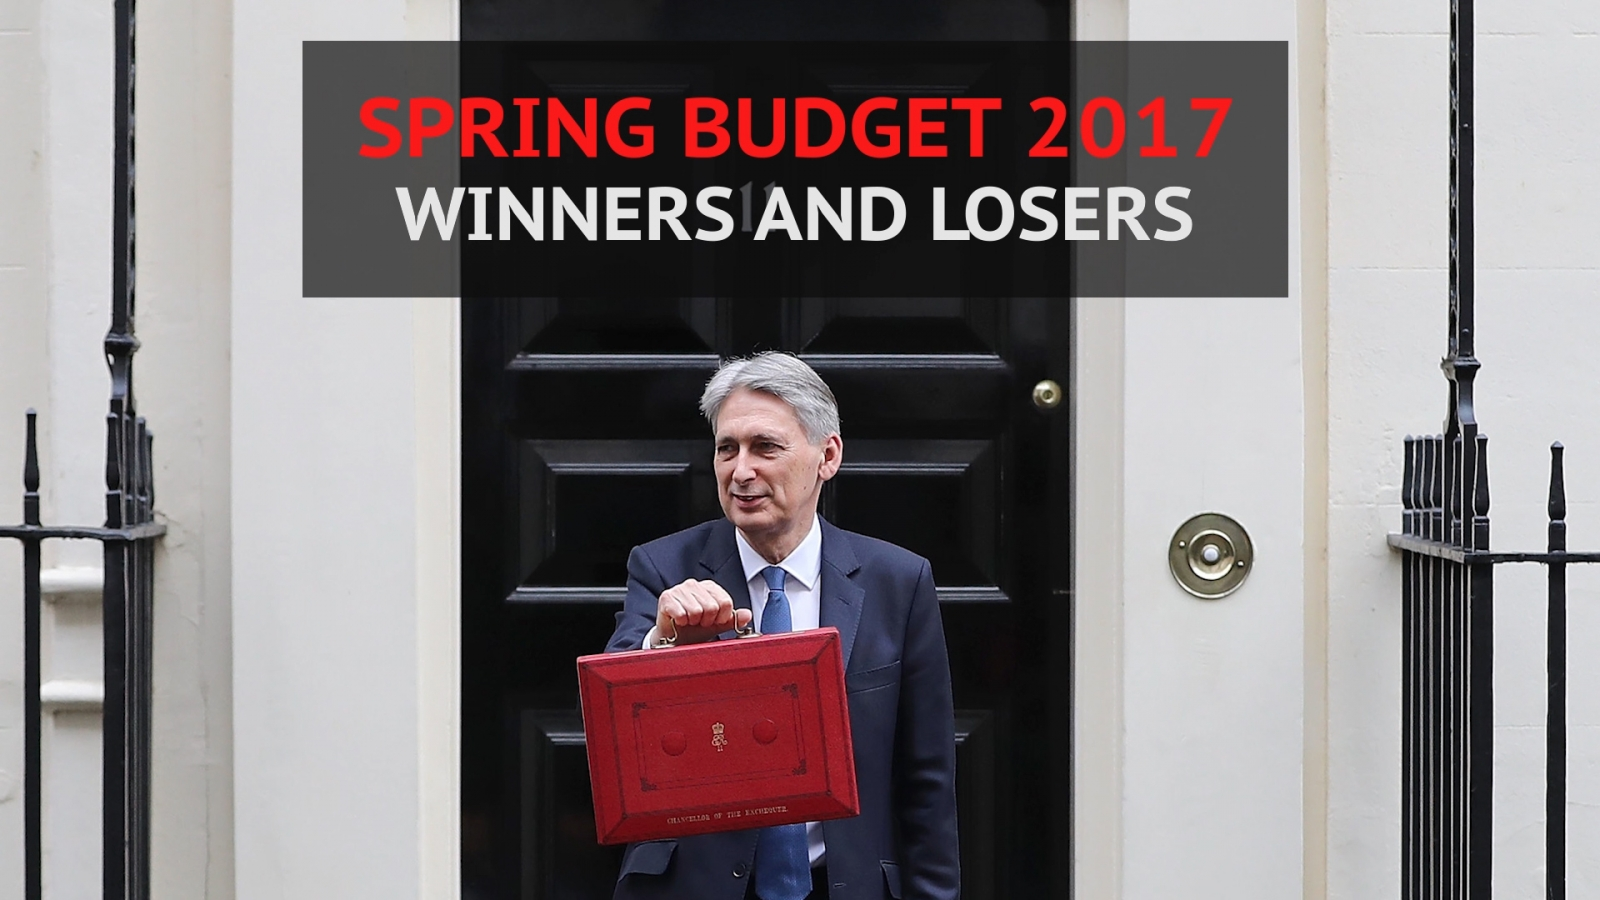 Spring Budget 2017: Winners and losers